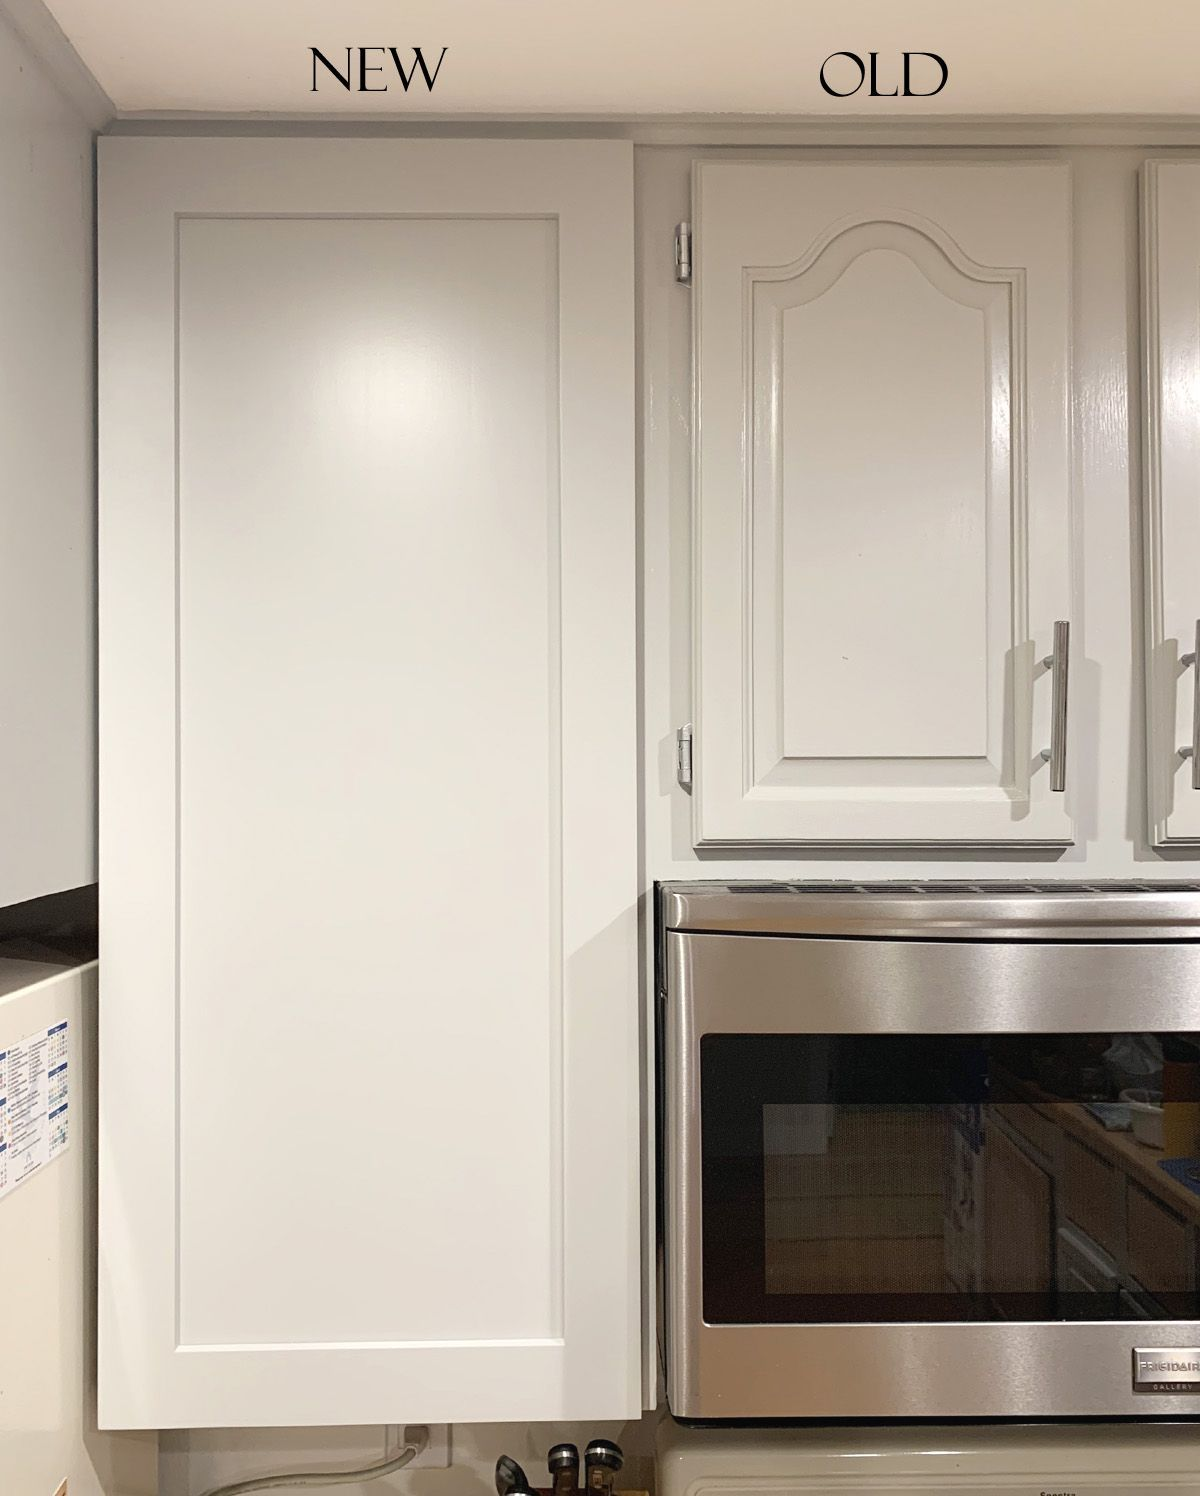 Best Paint For Cabinets Cabinets Paint In 2020 Best Kitchen Cabinet Paint Best Cabinet Paint Milk Paint Kitchen Cabinets